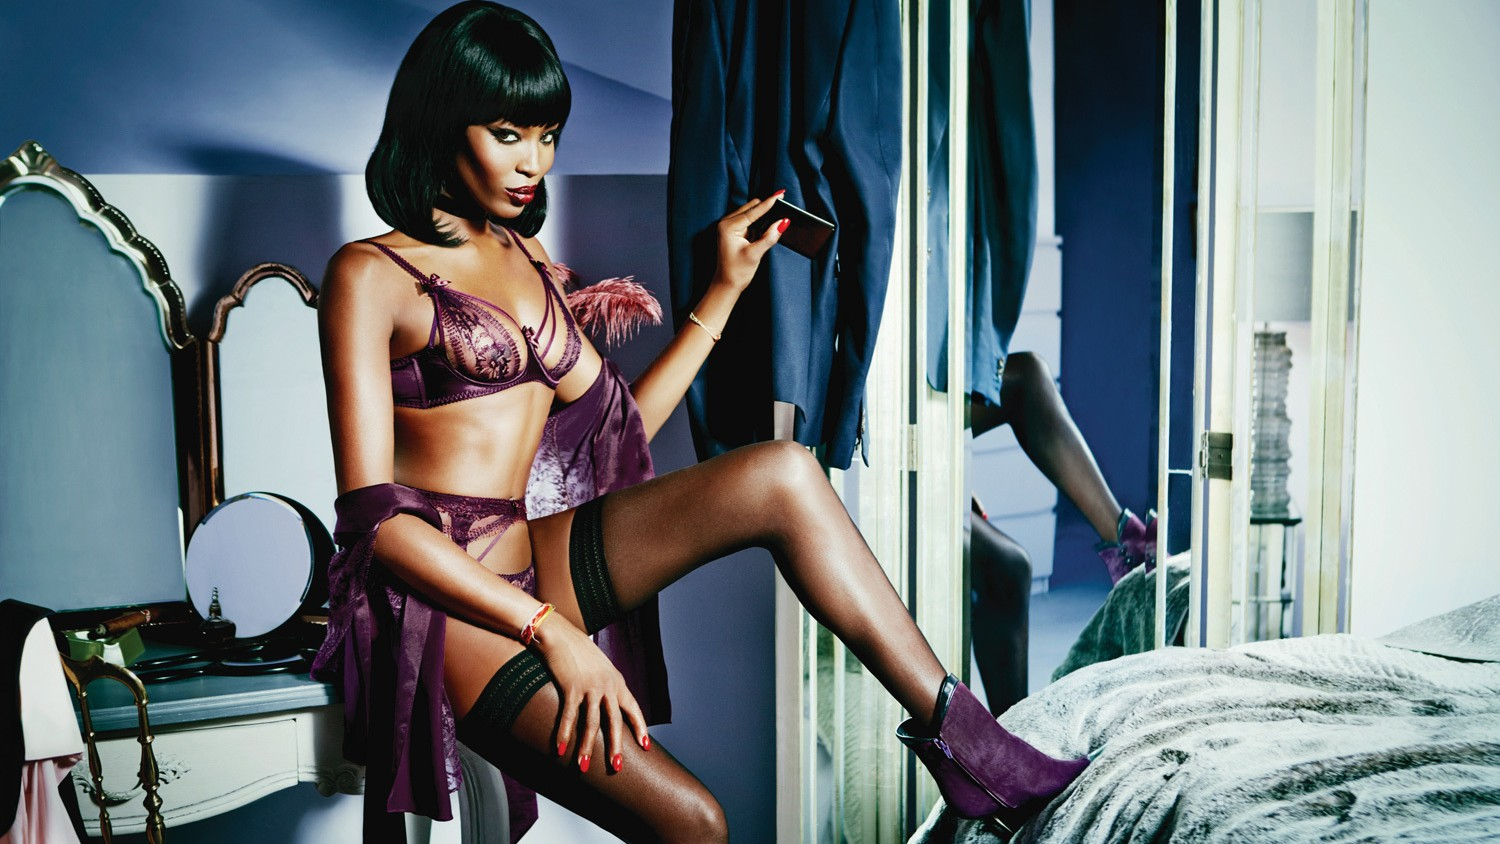 naomi campbell is the new face of agent provocateur